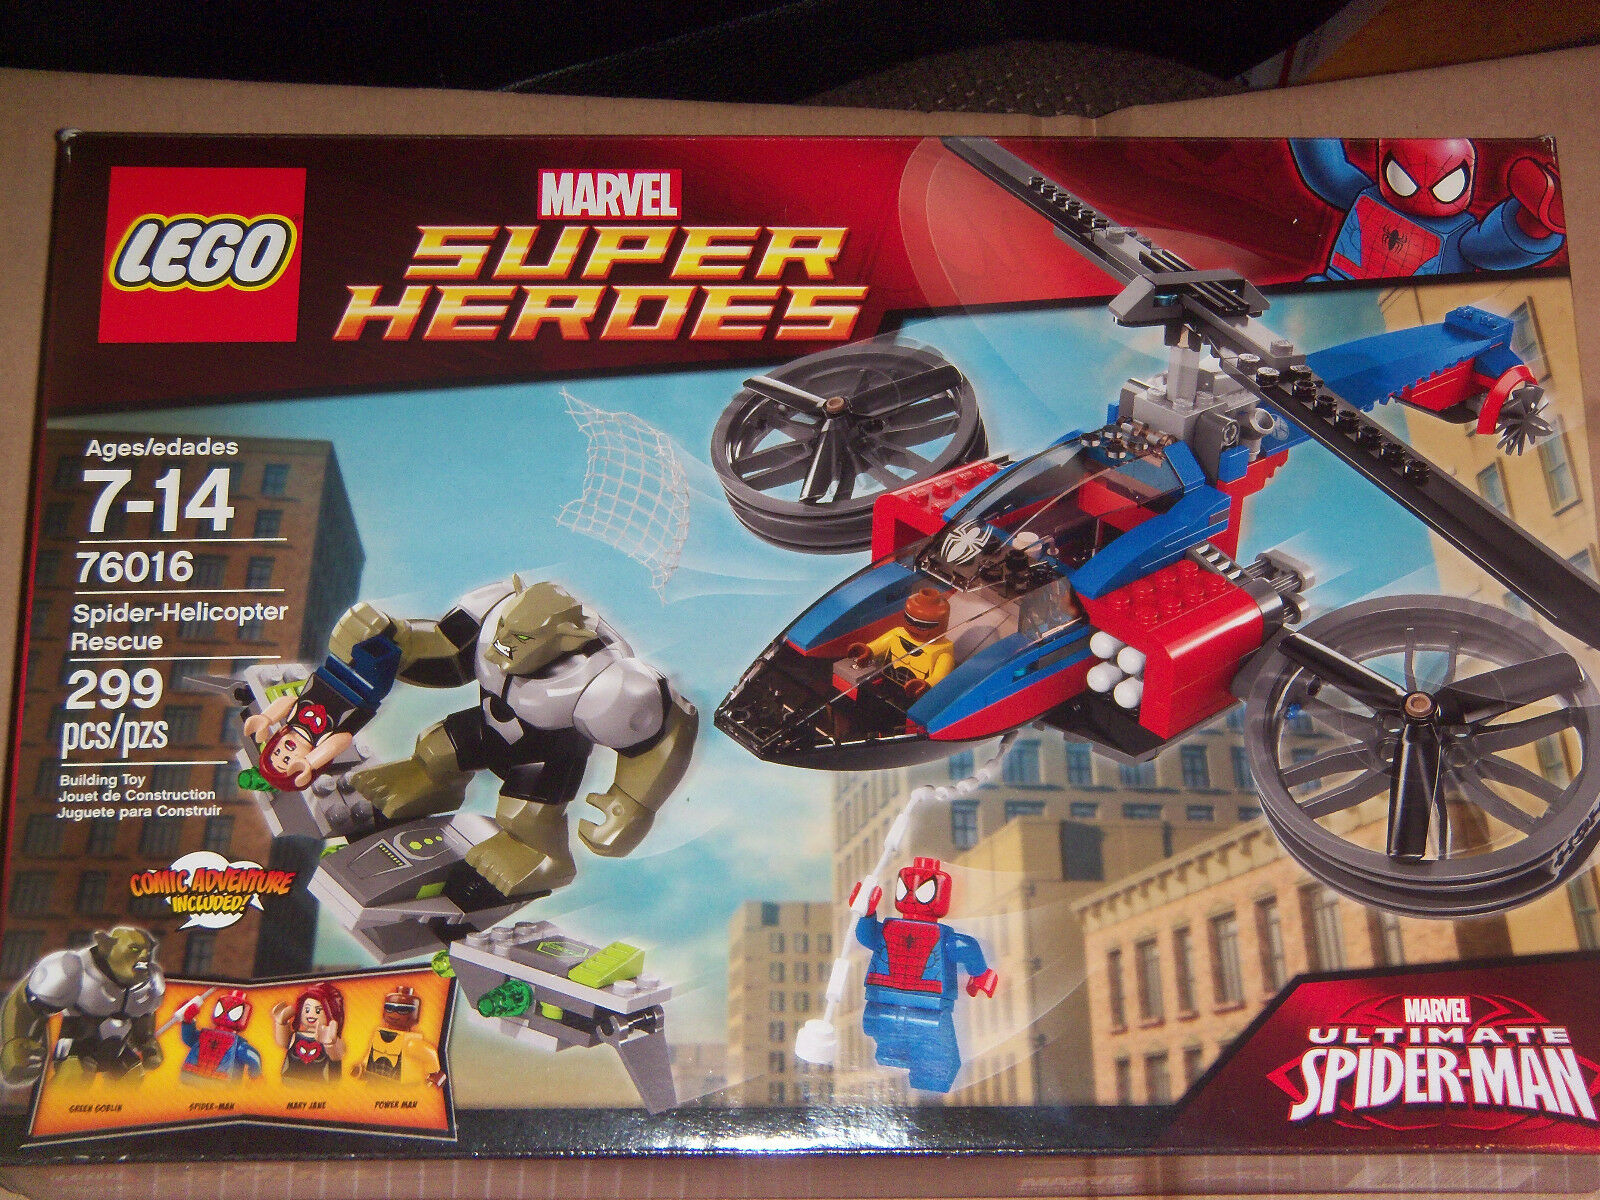 NEW   LEGO Spider-Helicopter Rescue (76016) 299 pcs.